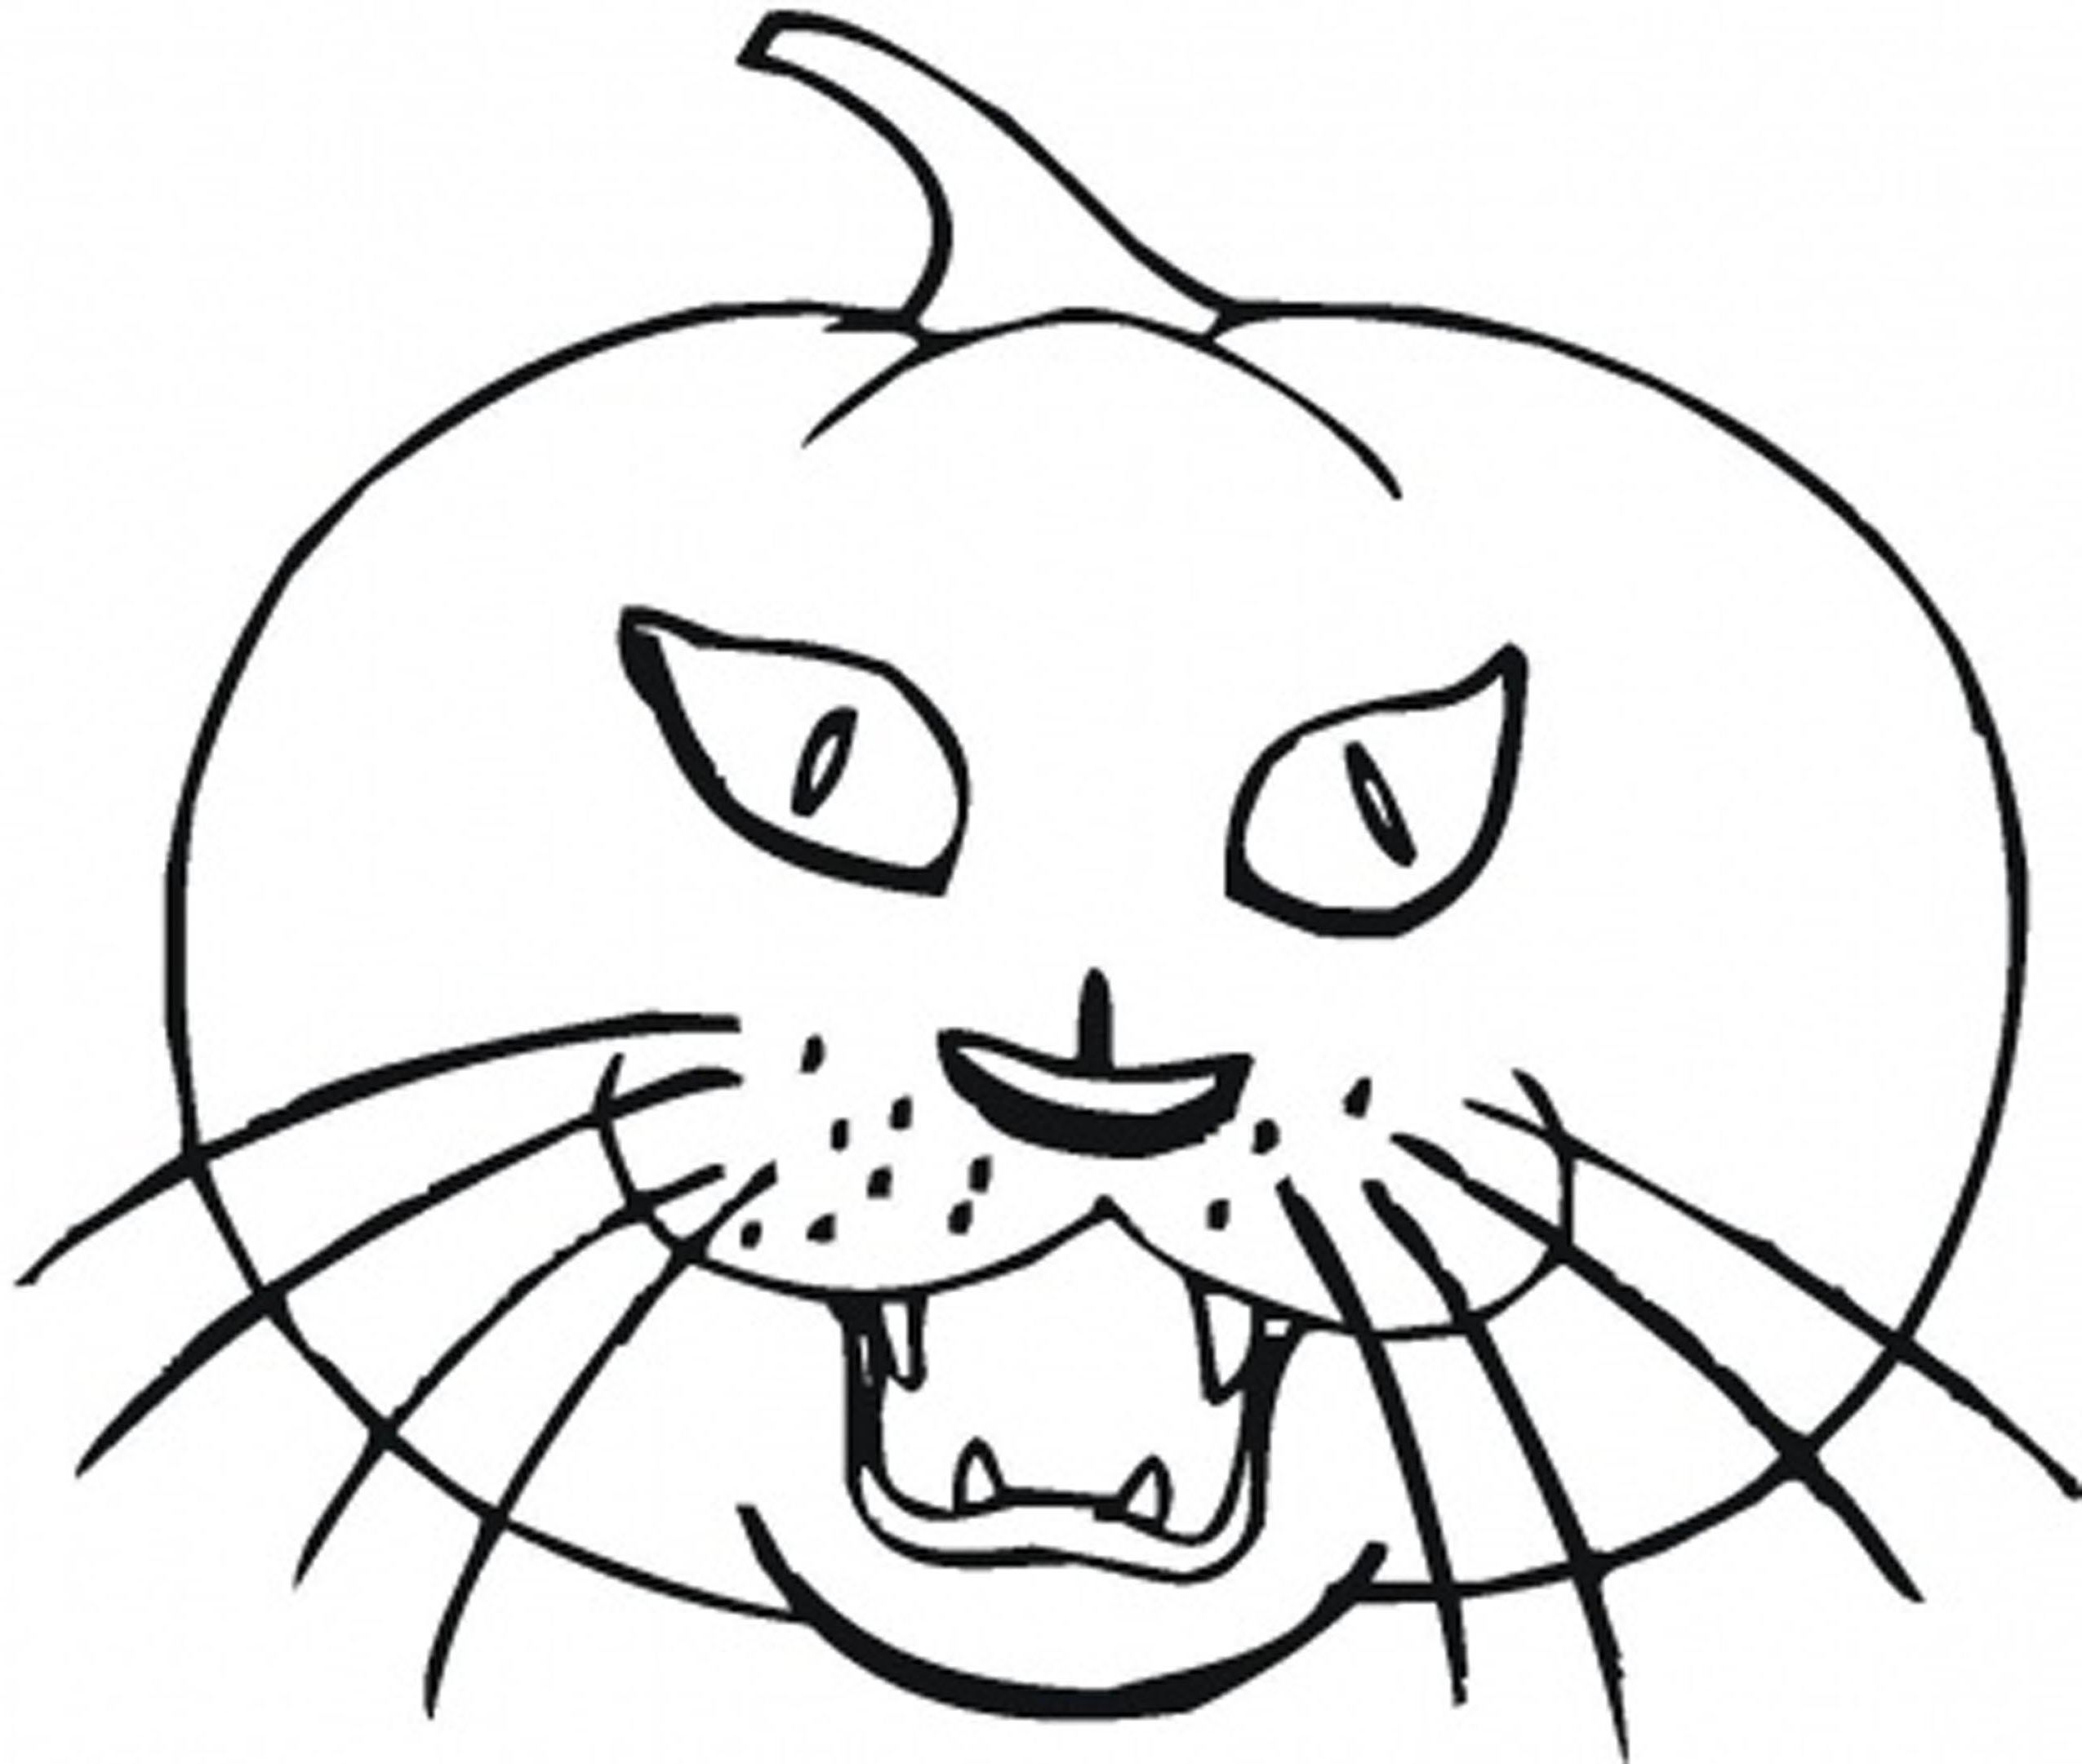 2550x2161 Appealing Halloween Coloring For Scary Cat Concept And Page Style